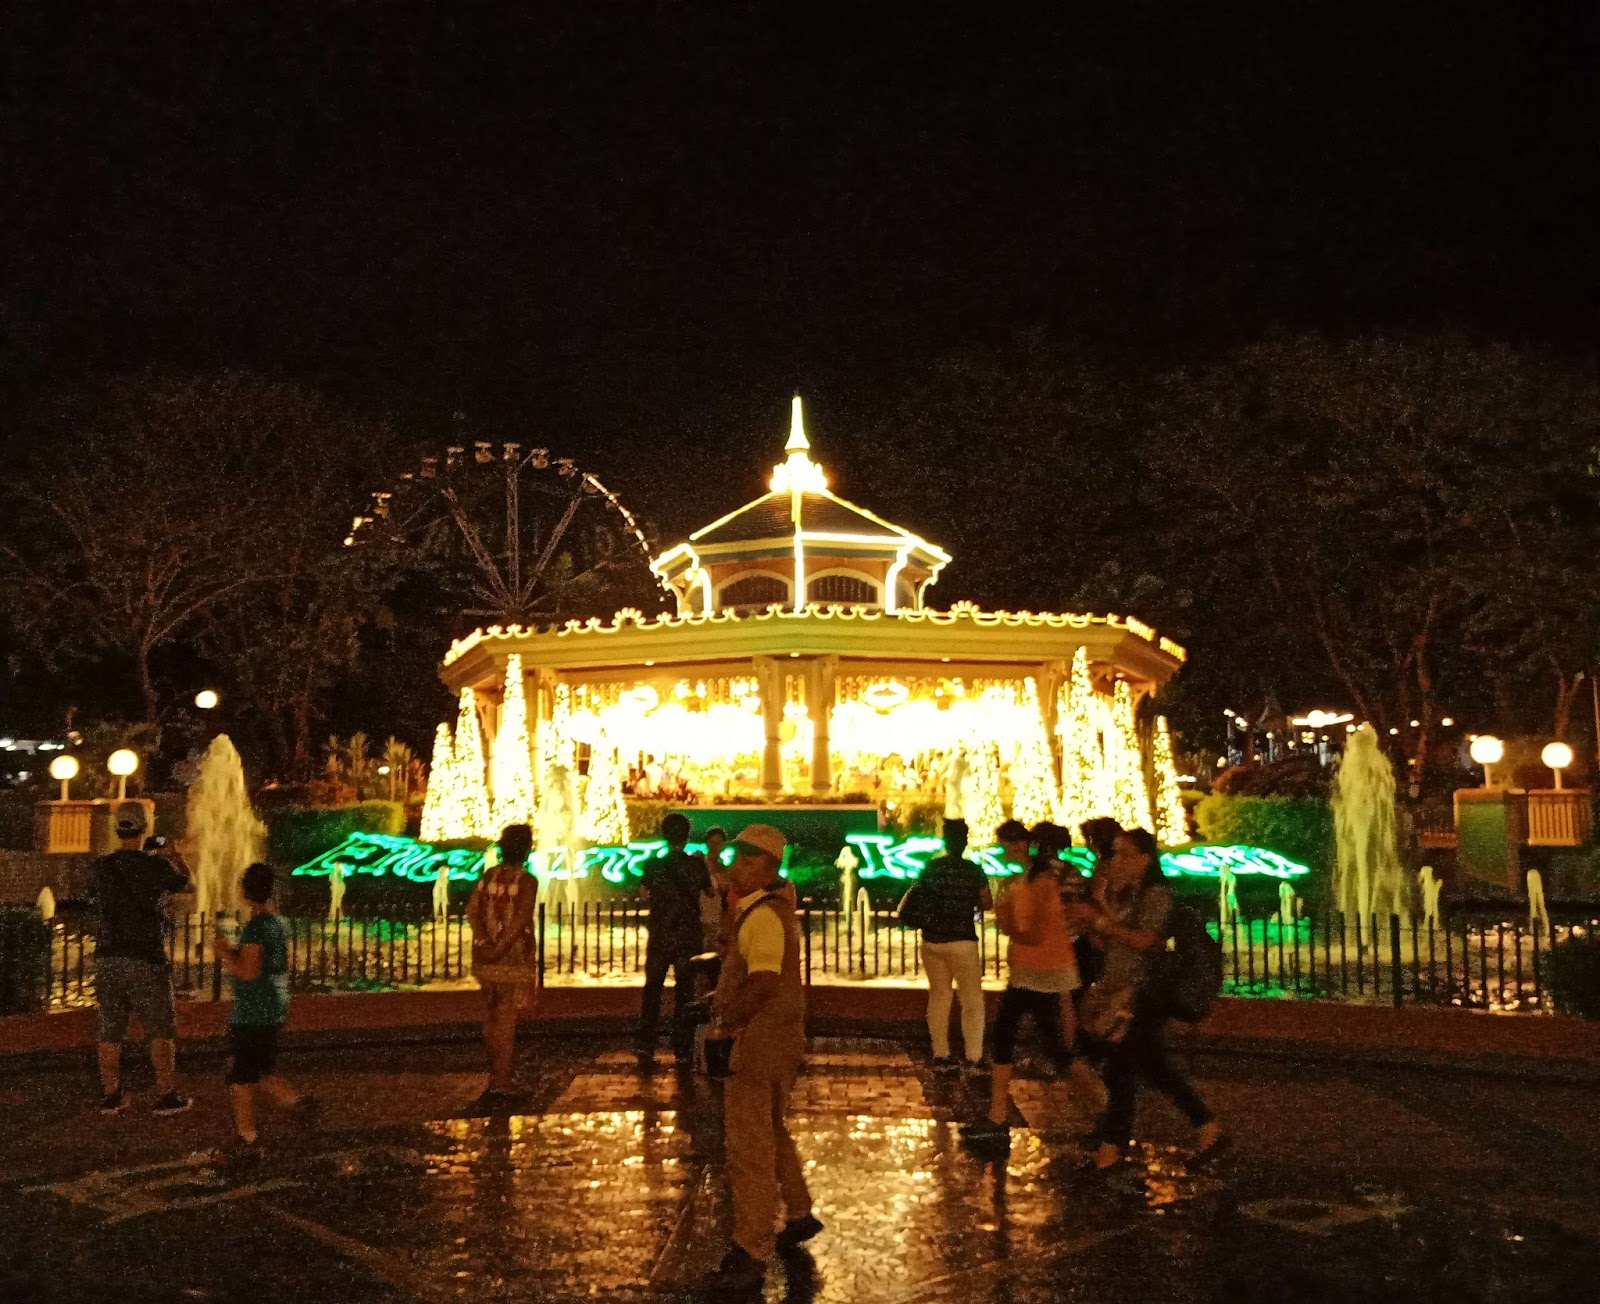 Grand Carousel (Night)